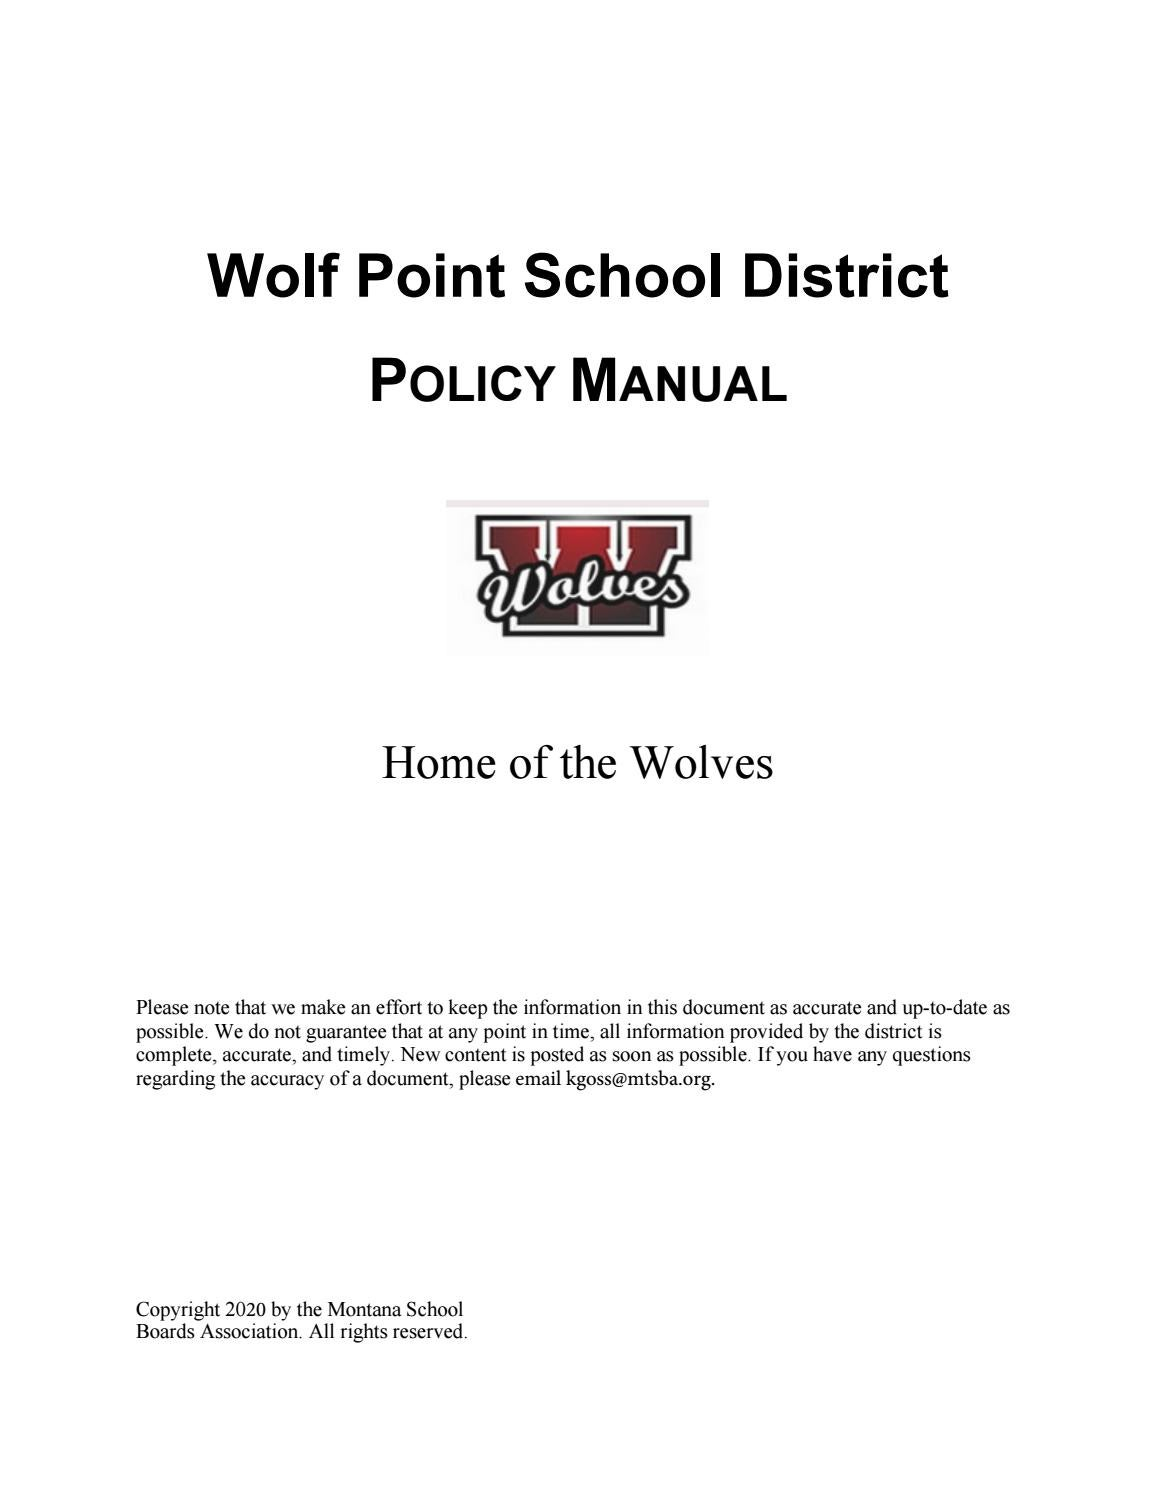 Wolf Point Public Schools Policy Manual By Montana School Boards Association Issuu